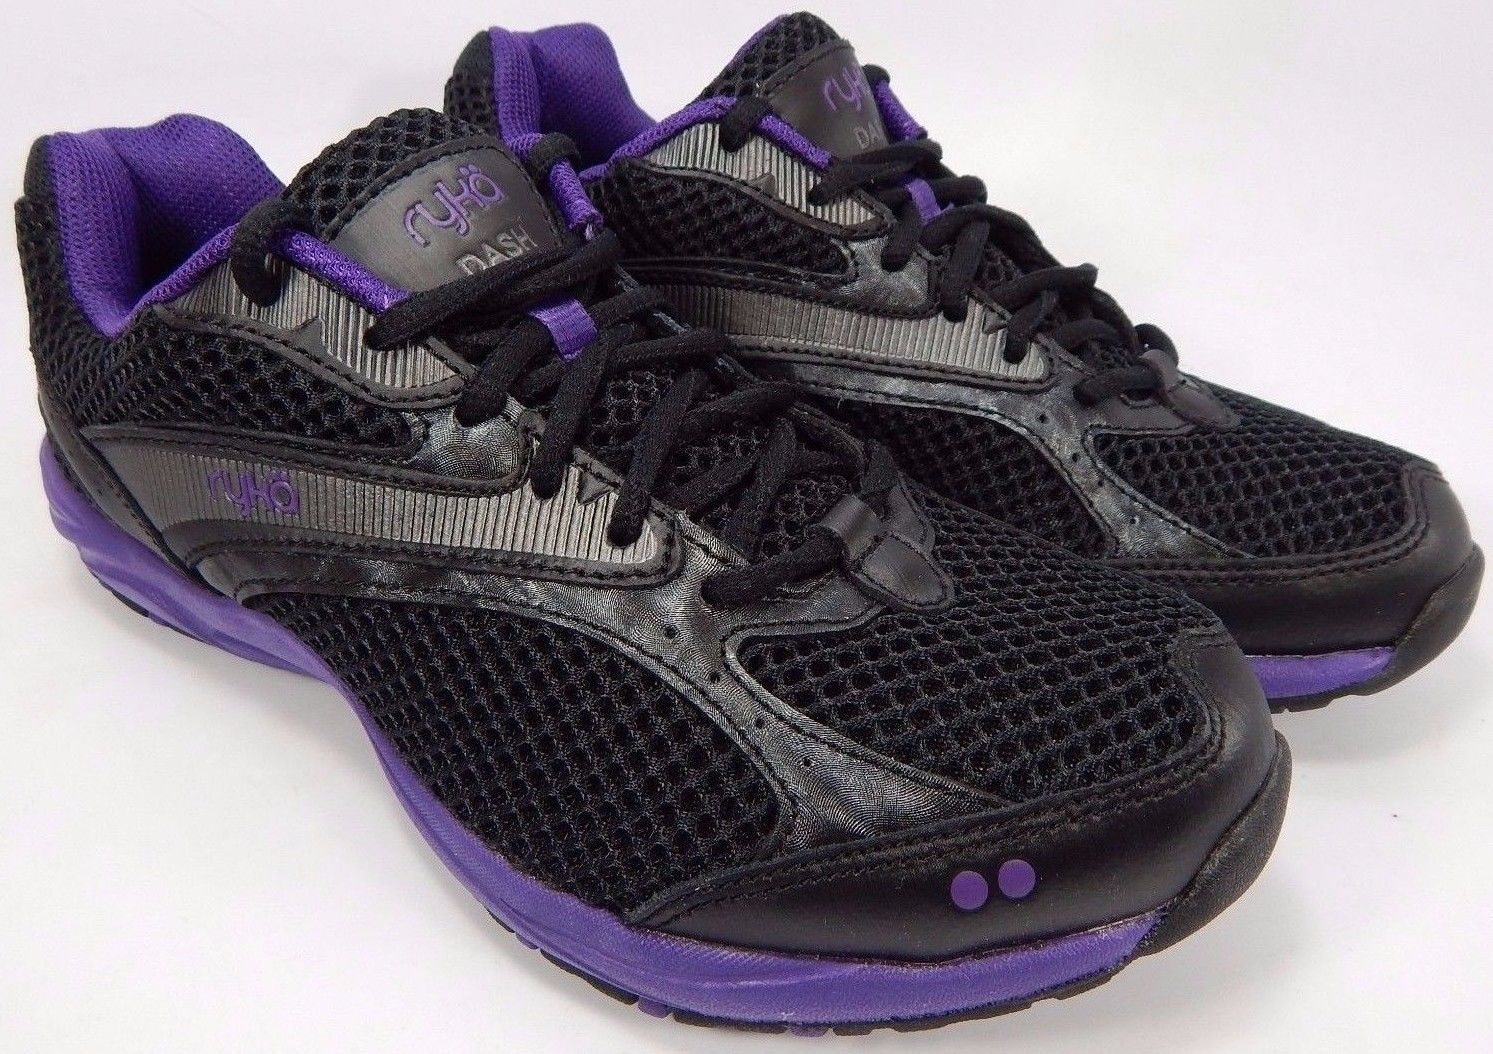 Ryka Dash Women's Running Shoes Size US 7 M (B) EU 37.5 Black Purple